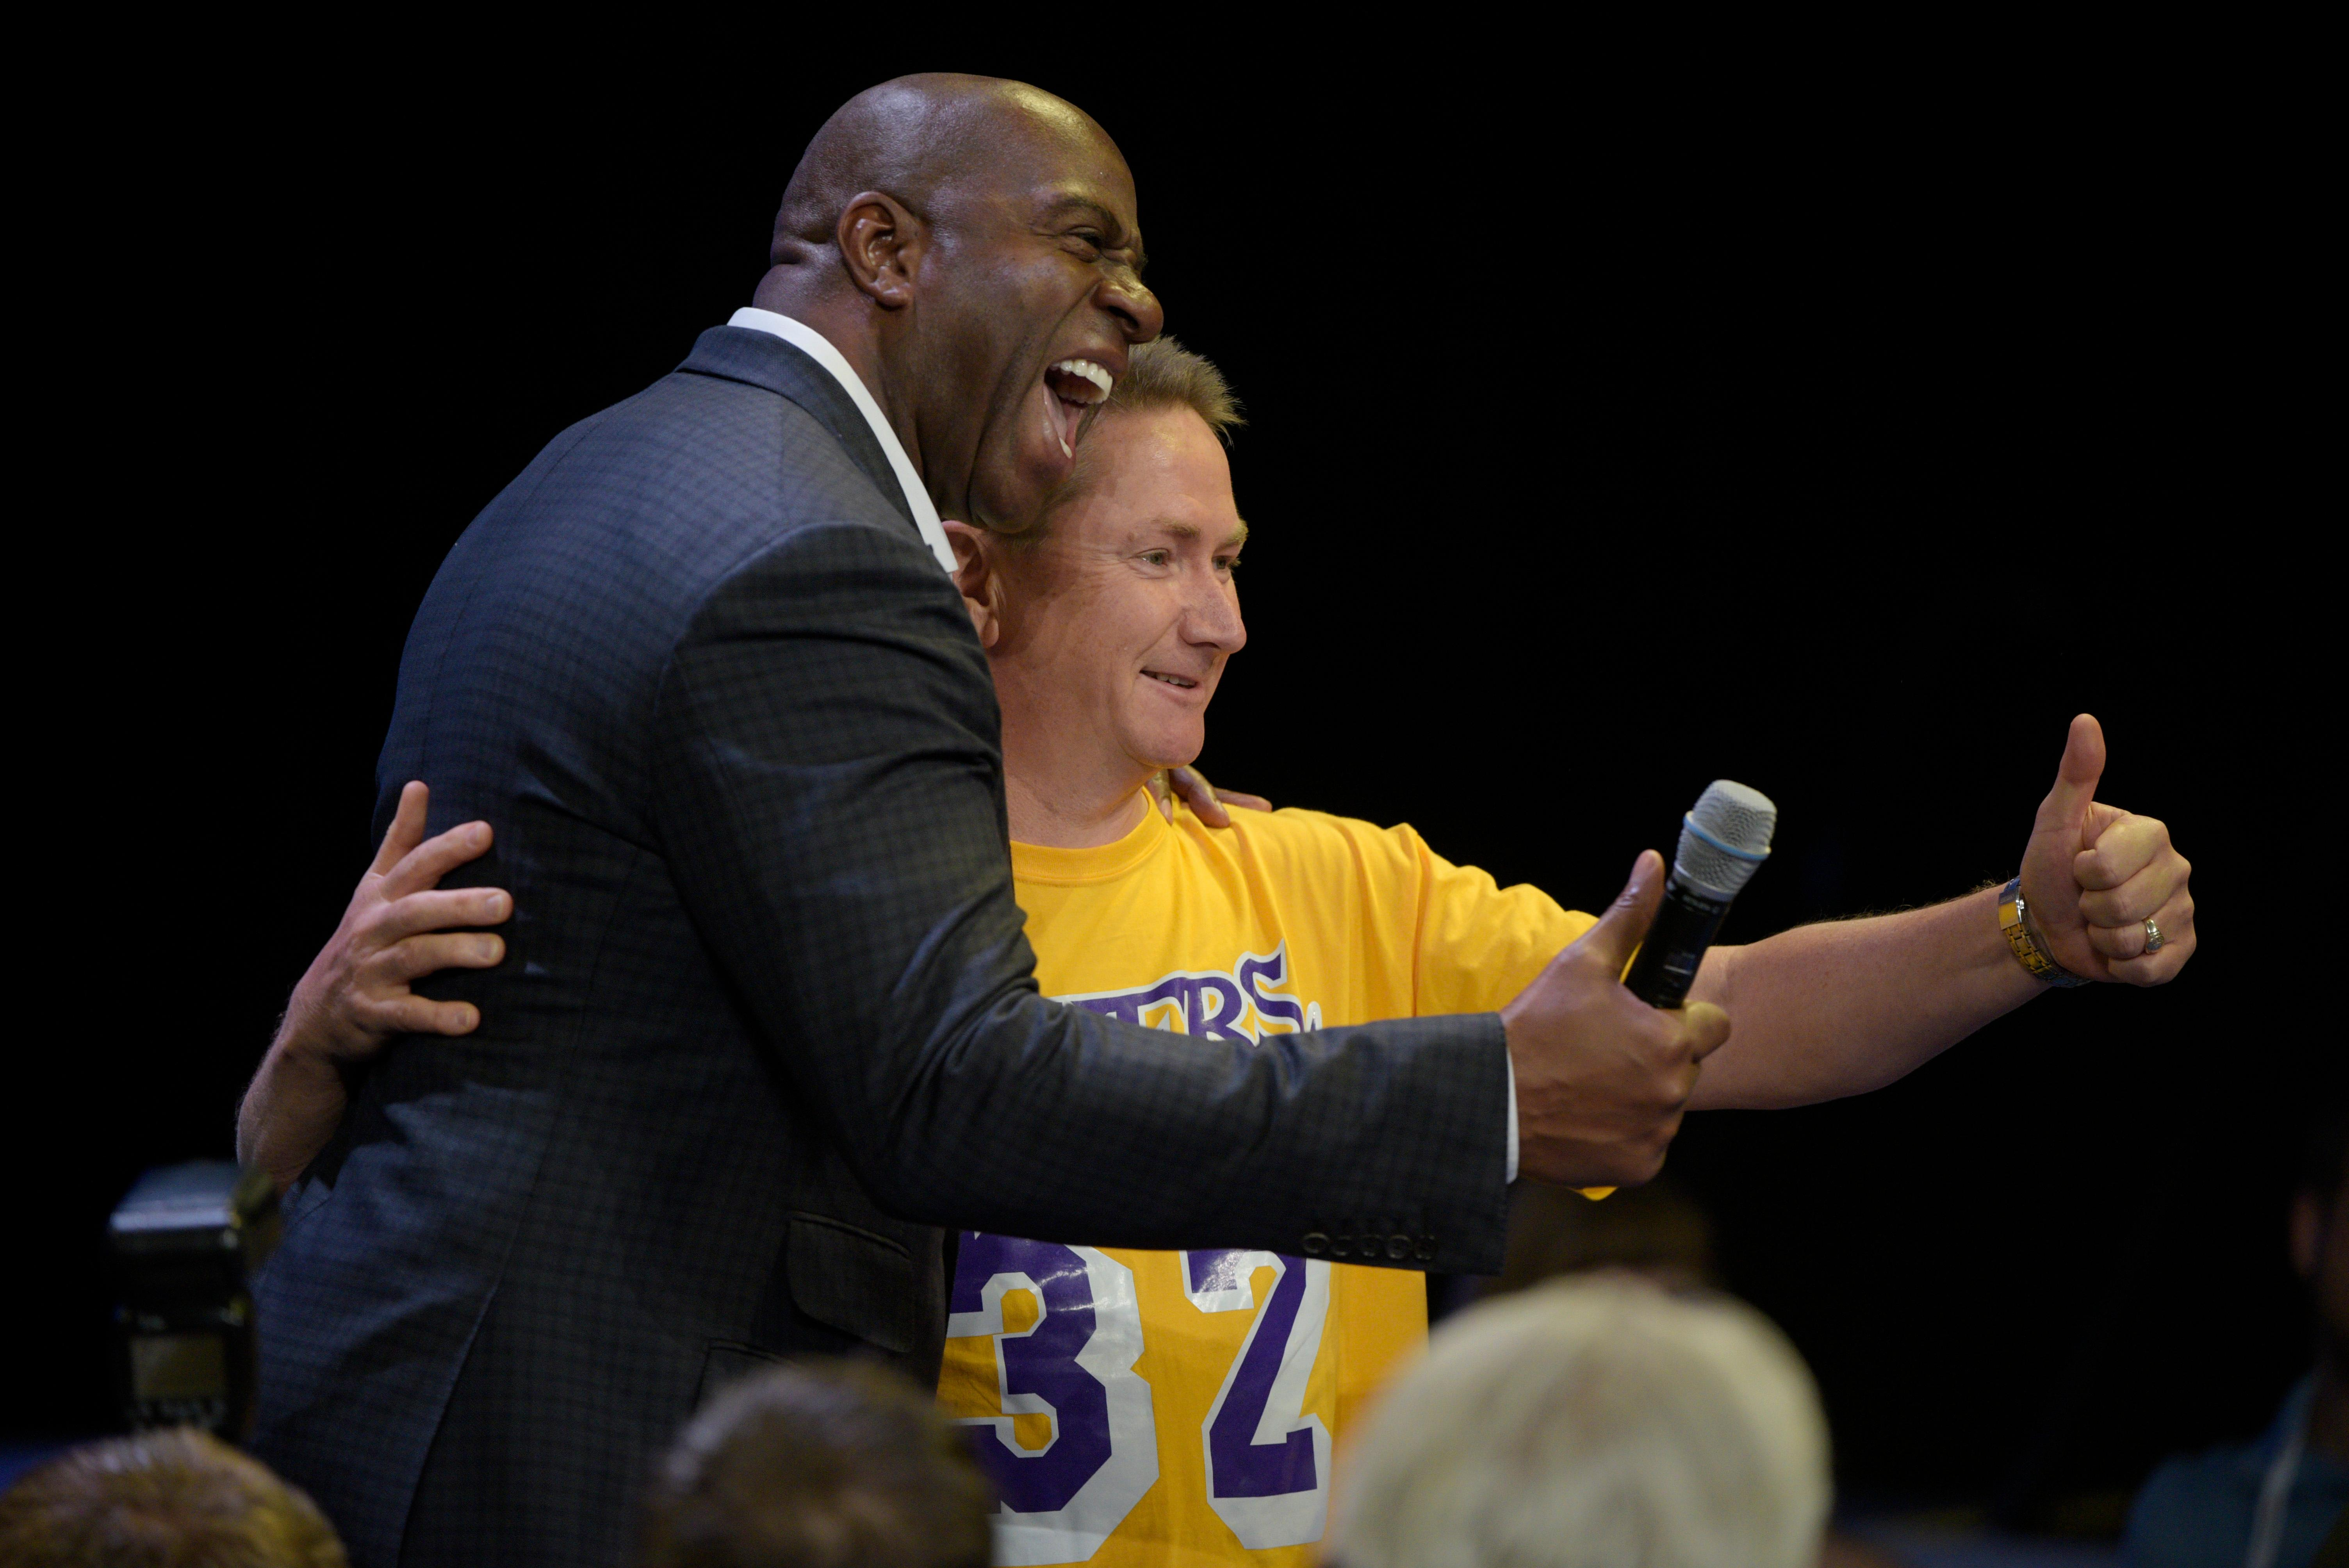 NBA legend and two-time Hall of Famer Earvin Magic Johnson takes a photo with an attendee while delivering a keynote address during the Global Gaming Expo Thursday, October 5, 2017, at the Sands Expo and Convention Center. CREDIT: Sam Morris/Las Vegas News Bureau